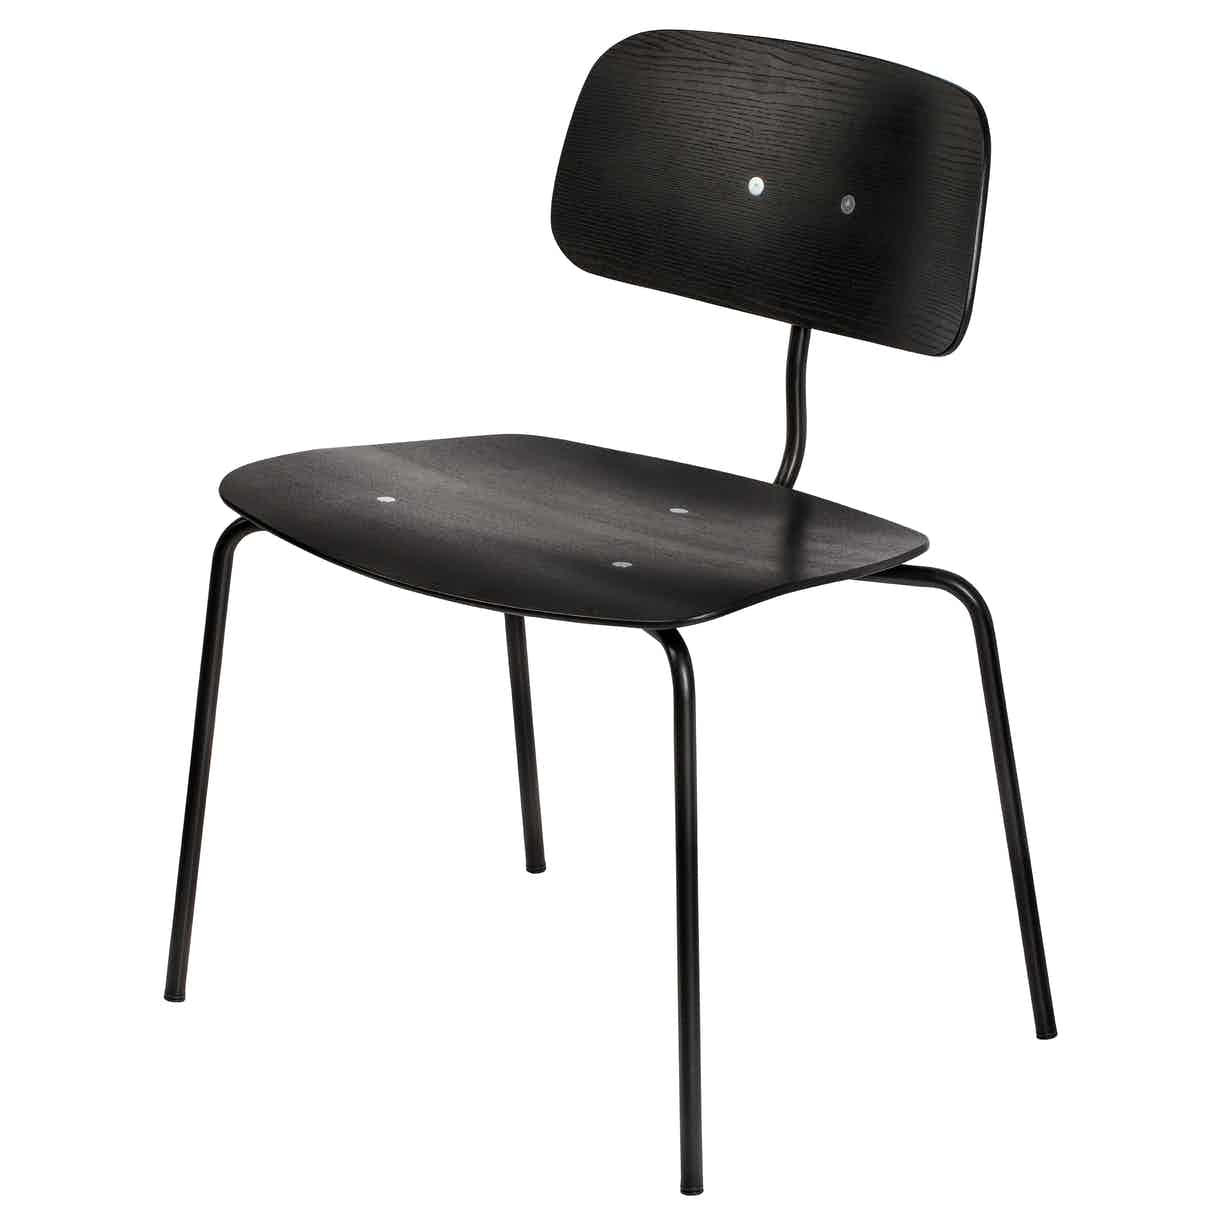 Engelbrechts kevi 2064 chair black angle haute living